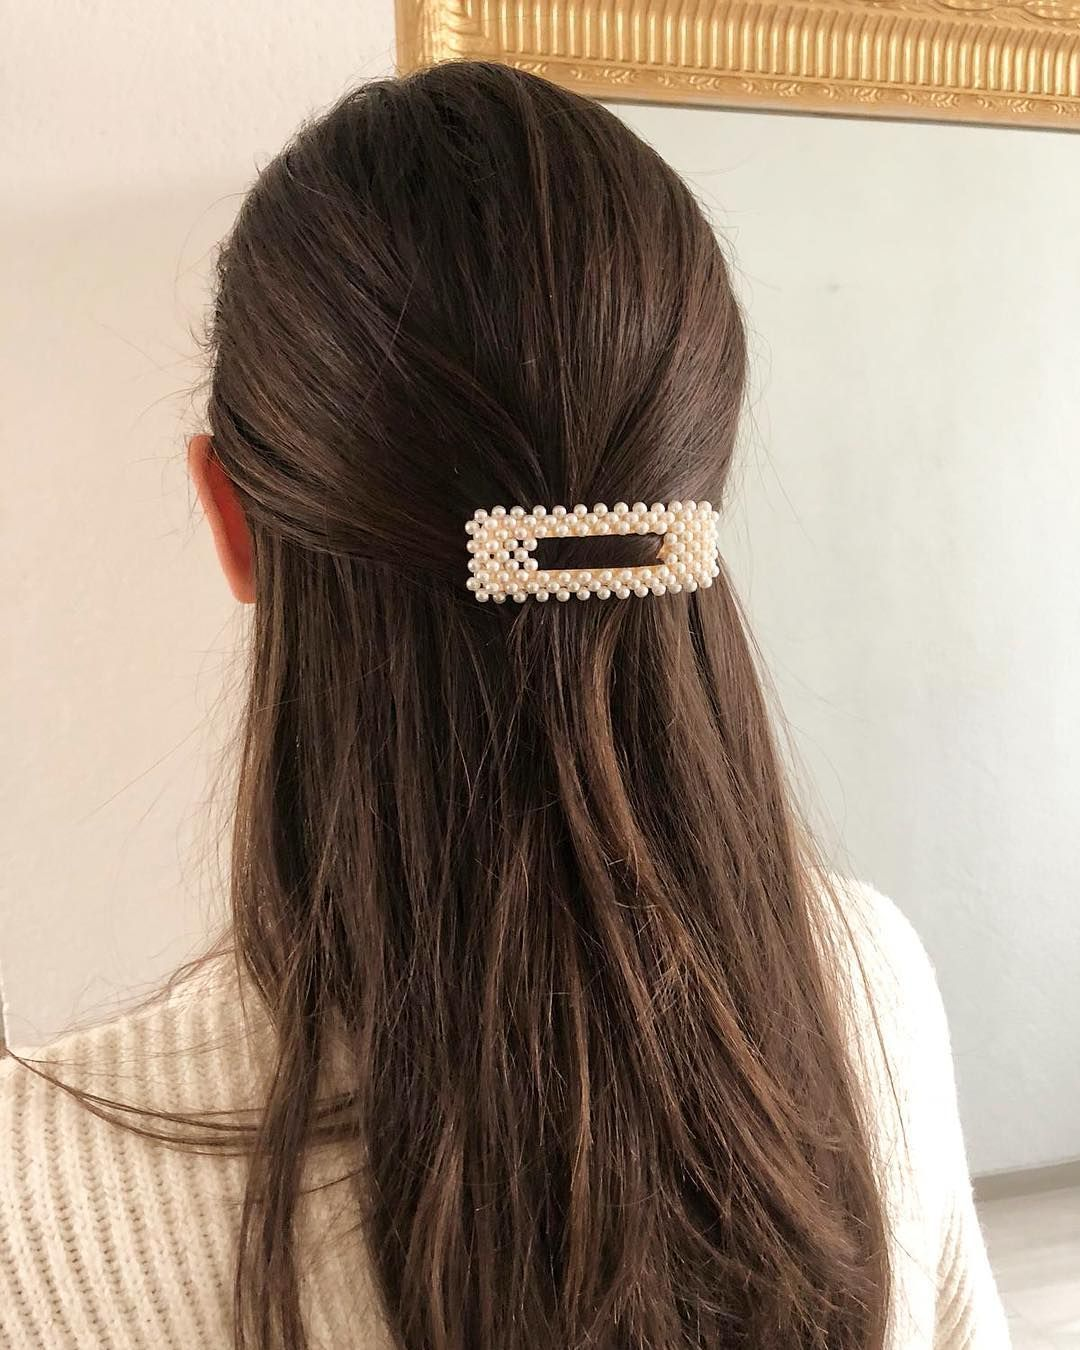 Nina Colic On Instagram Detail Shop Bipu Colic Detail Ins Vintage Hair Clips Hair Accessories Vintage Hairstyles